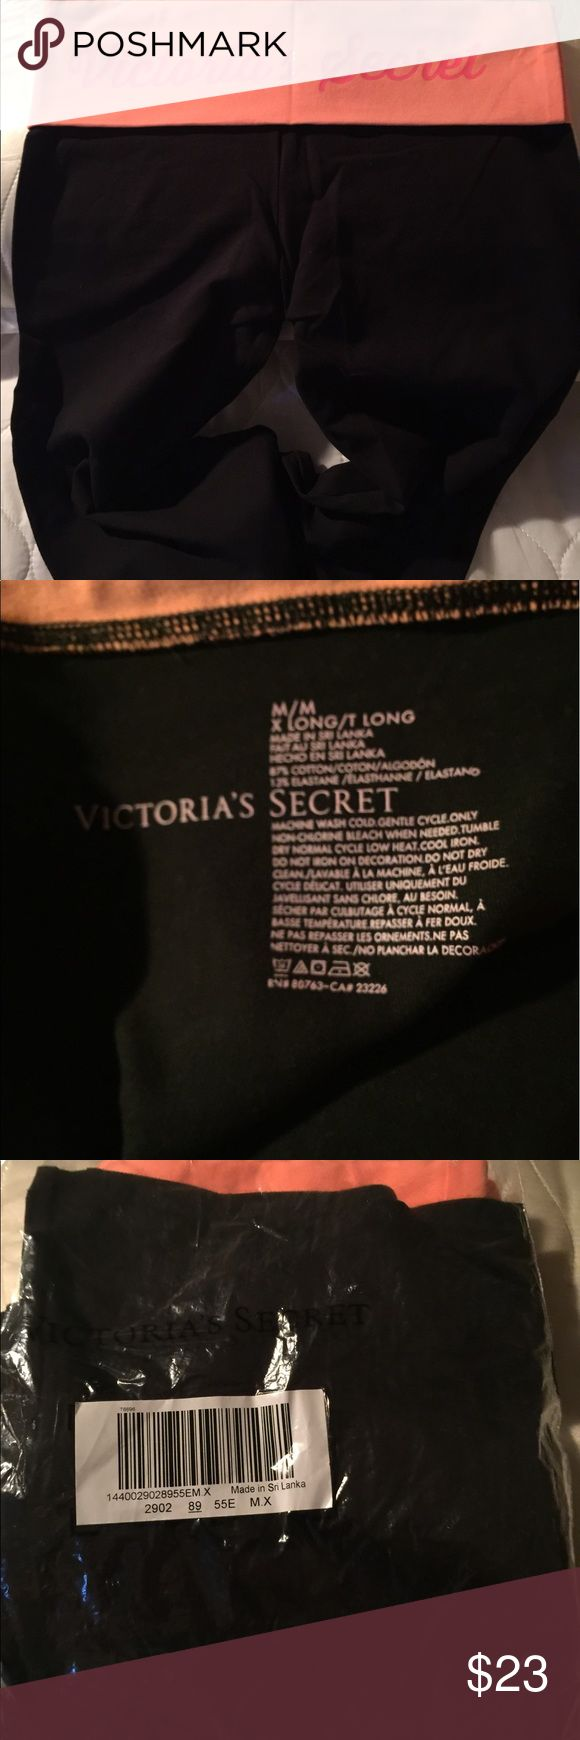 Victoria's Secret yoga pants. Victoria Secret yoga pants, black and melon, with logo on back, size medium-extra long tall.  New in the package Victoria's Secret Pants Track Pants & Joggers